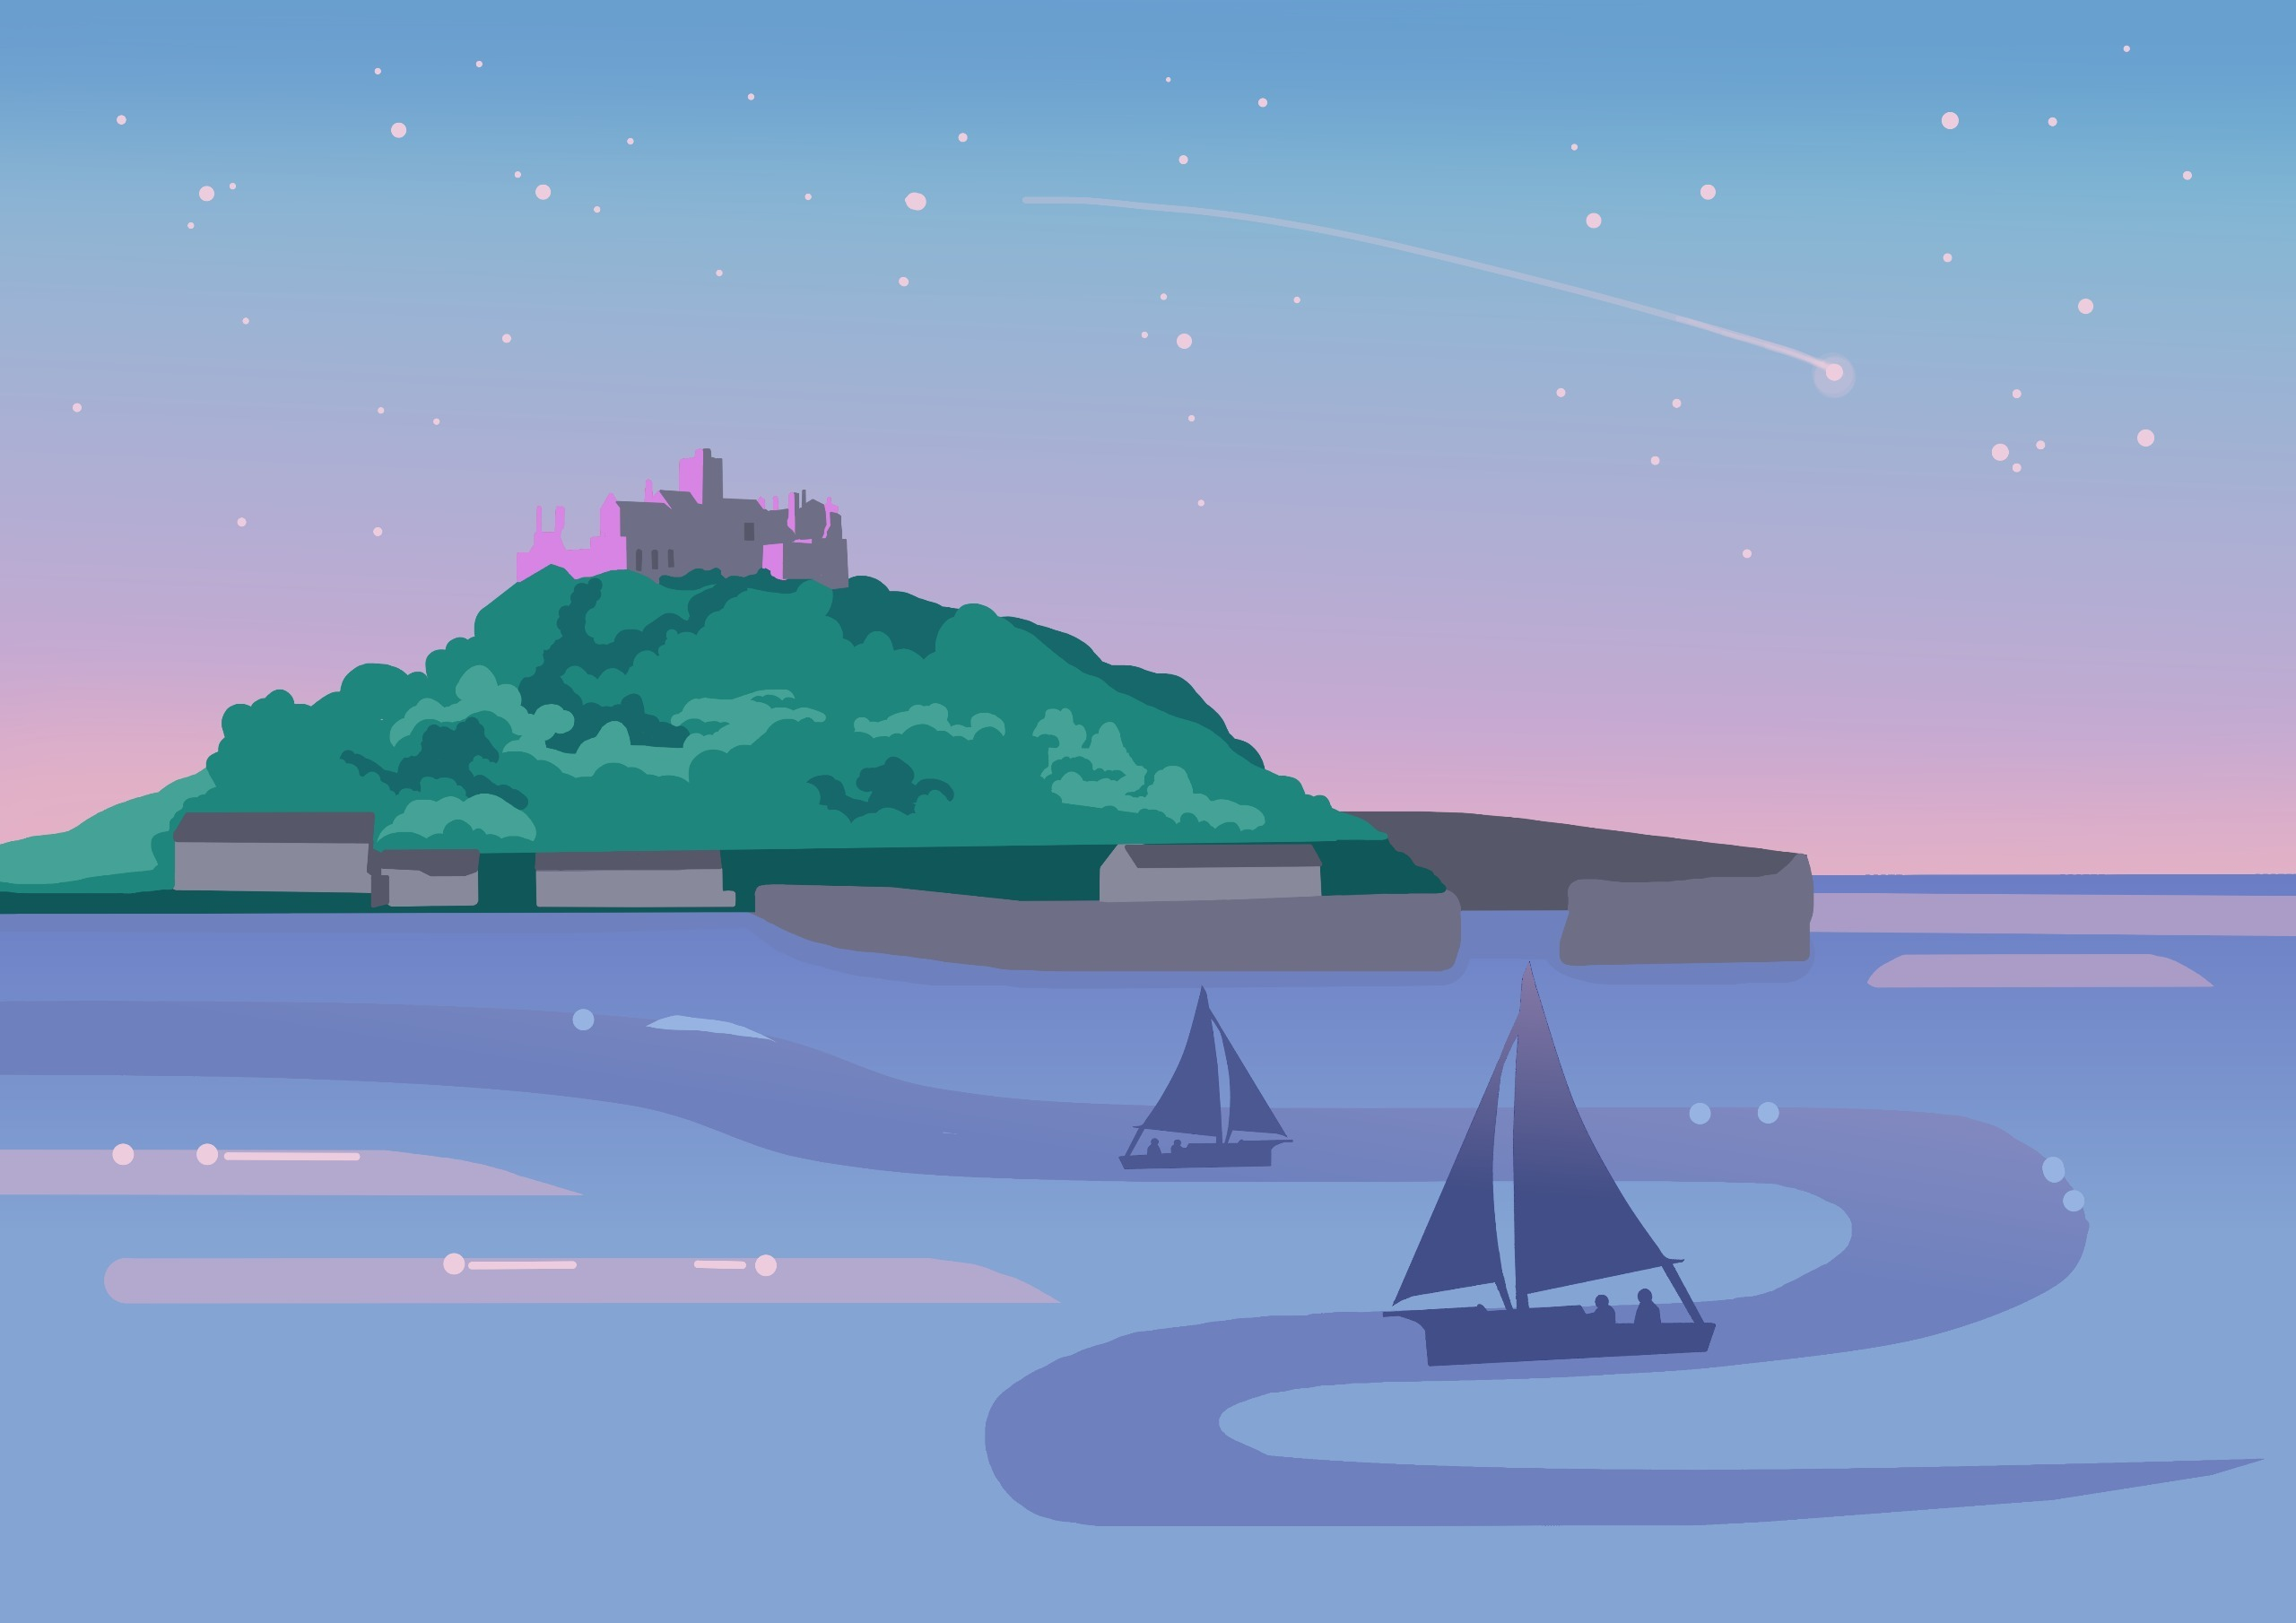 St Mount - cornwall, illustration - ambernillustrations | ello